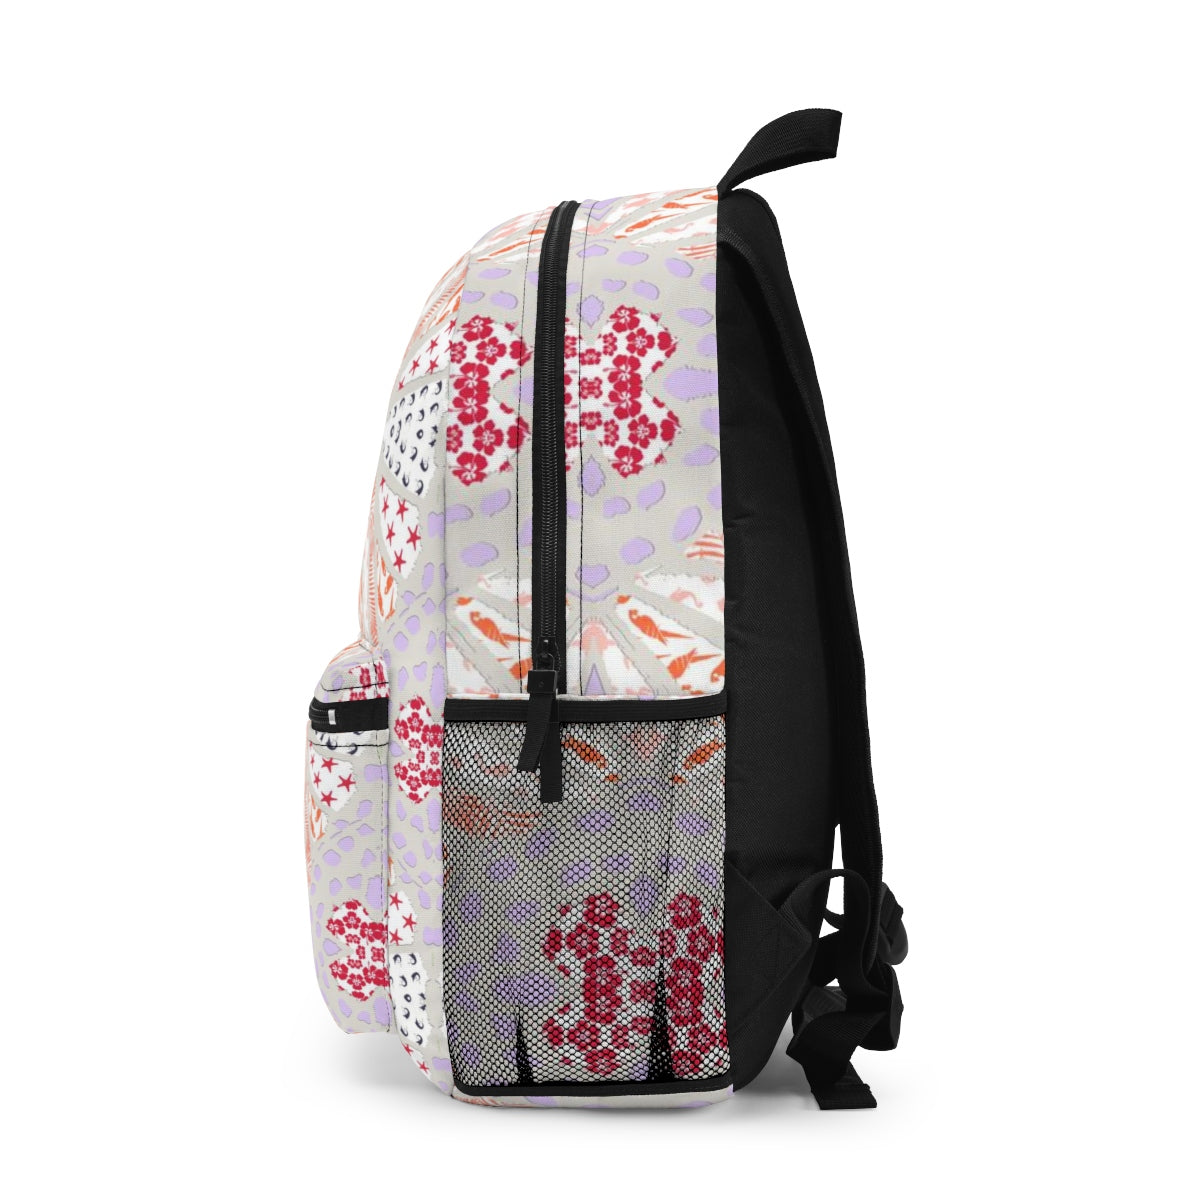 Fiji Islands #0002 (Backpack)